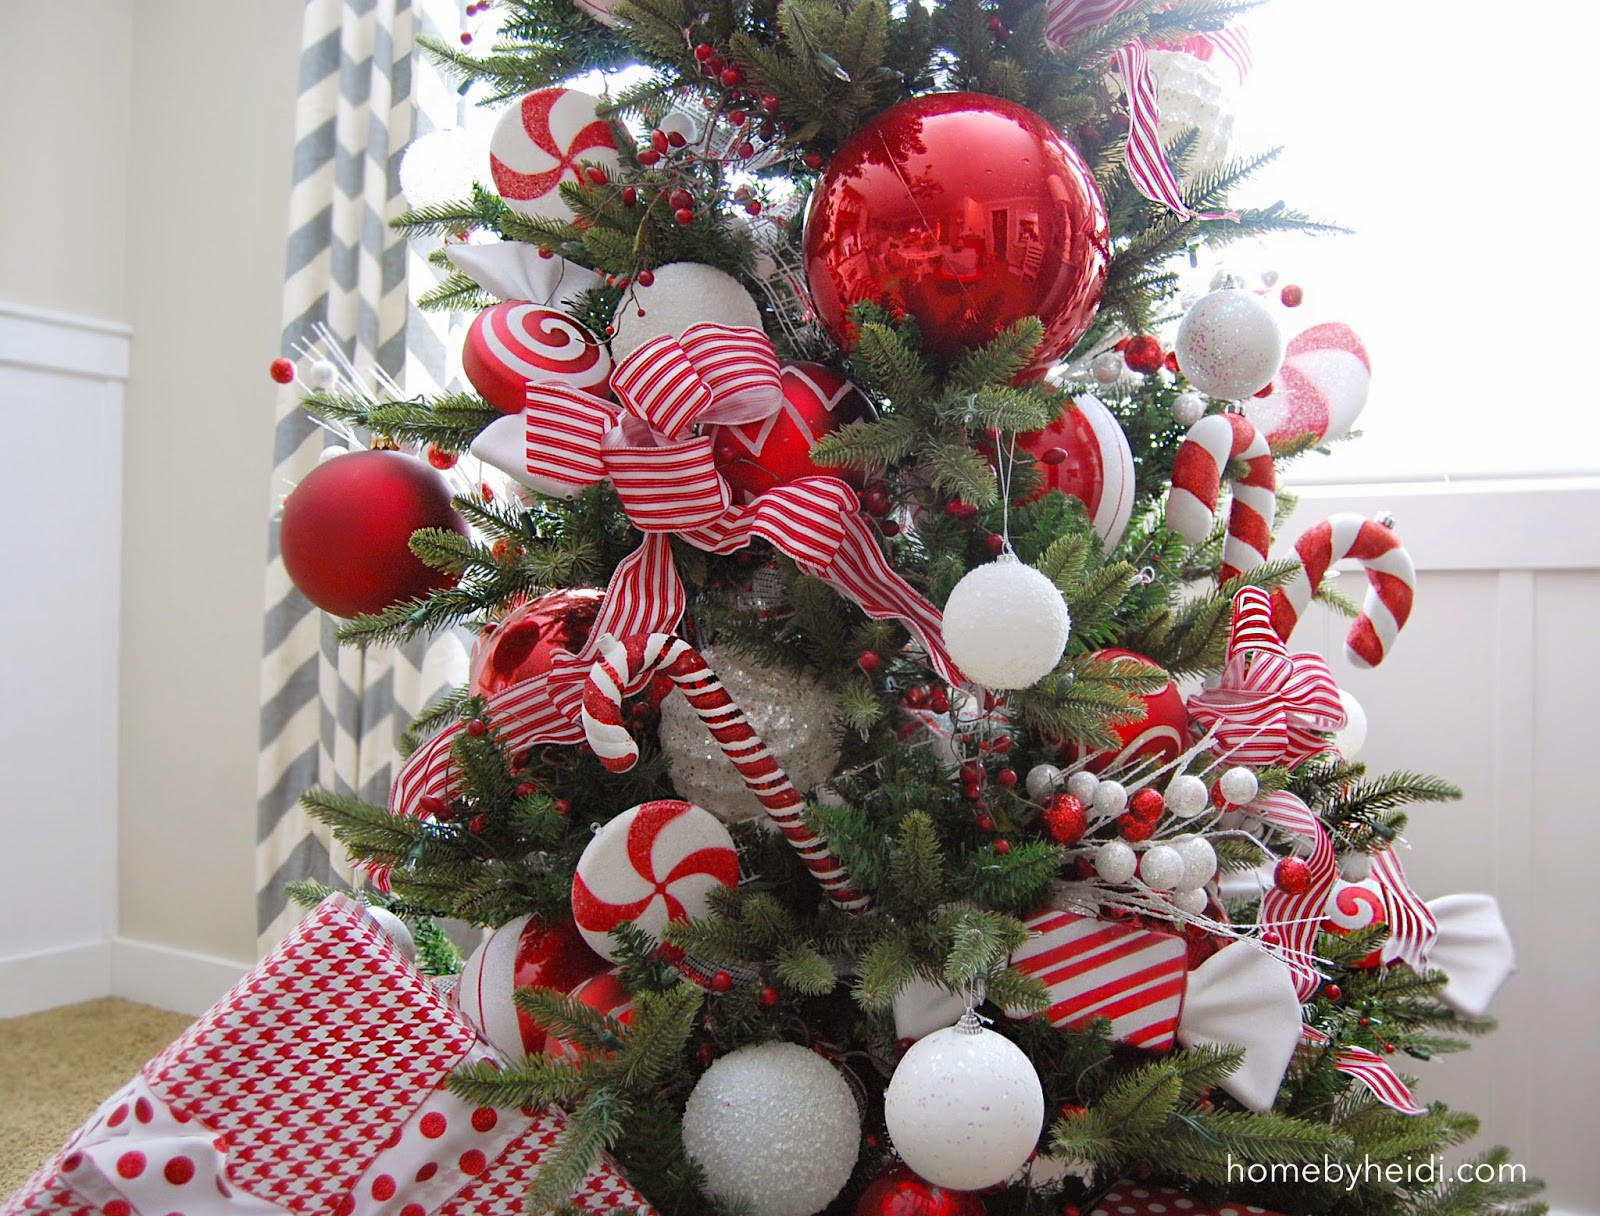 Candy Cane Christmas  Home By Heidi Candy Cane Christmas Tree